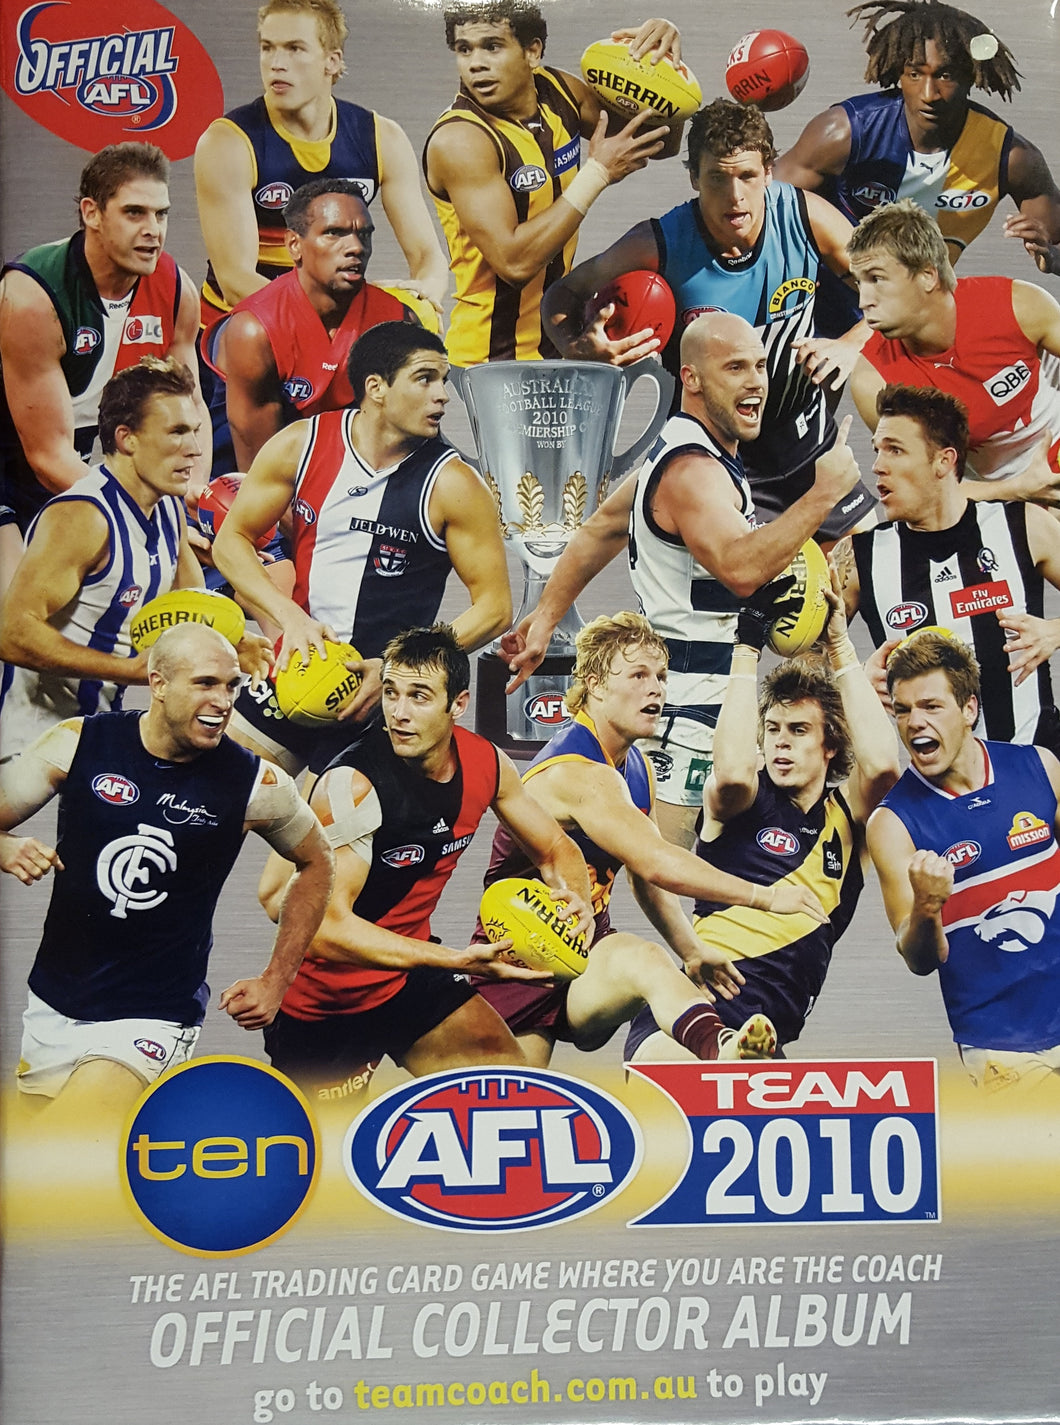 2009 Teamcoach AFL Set in Album